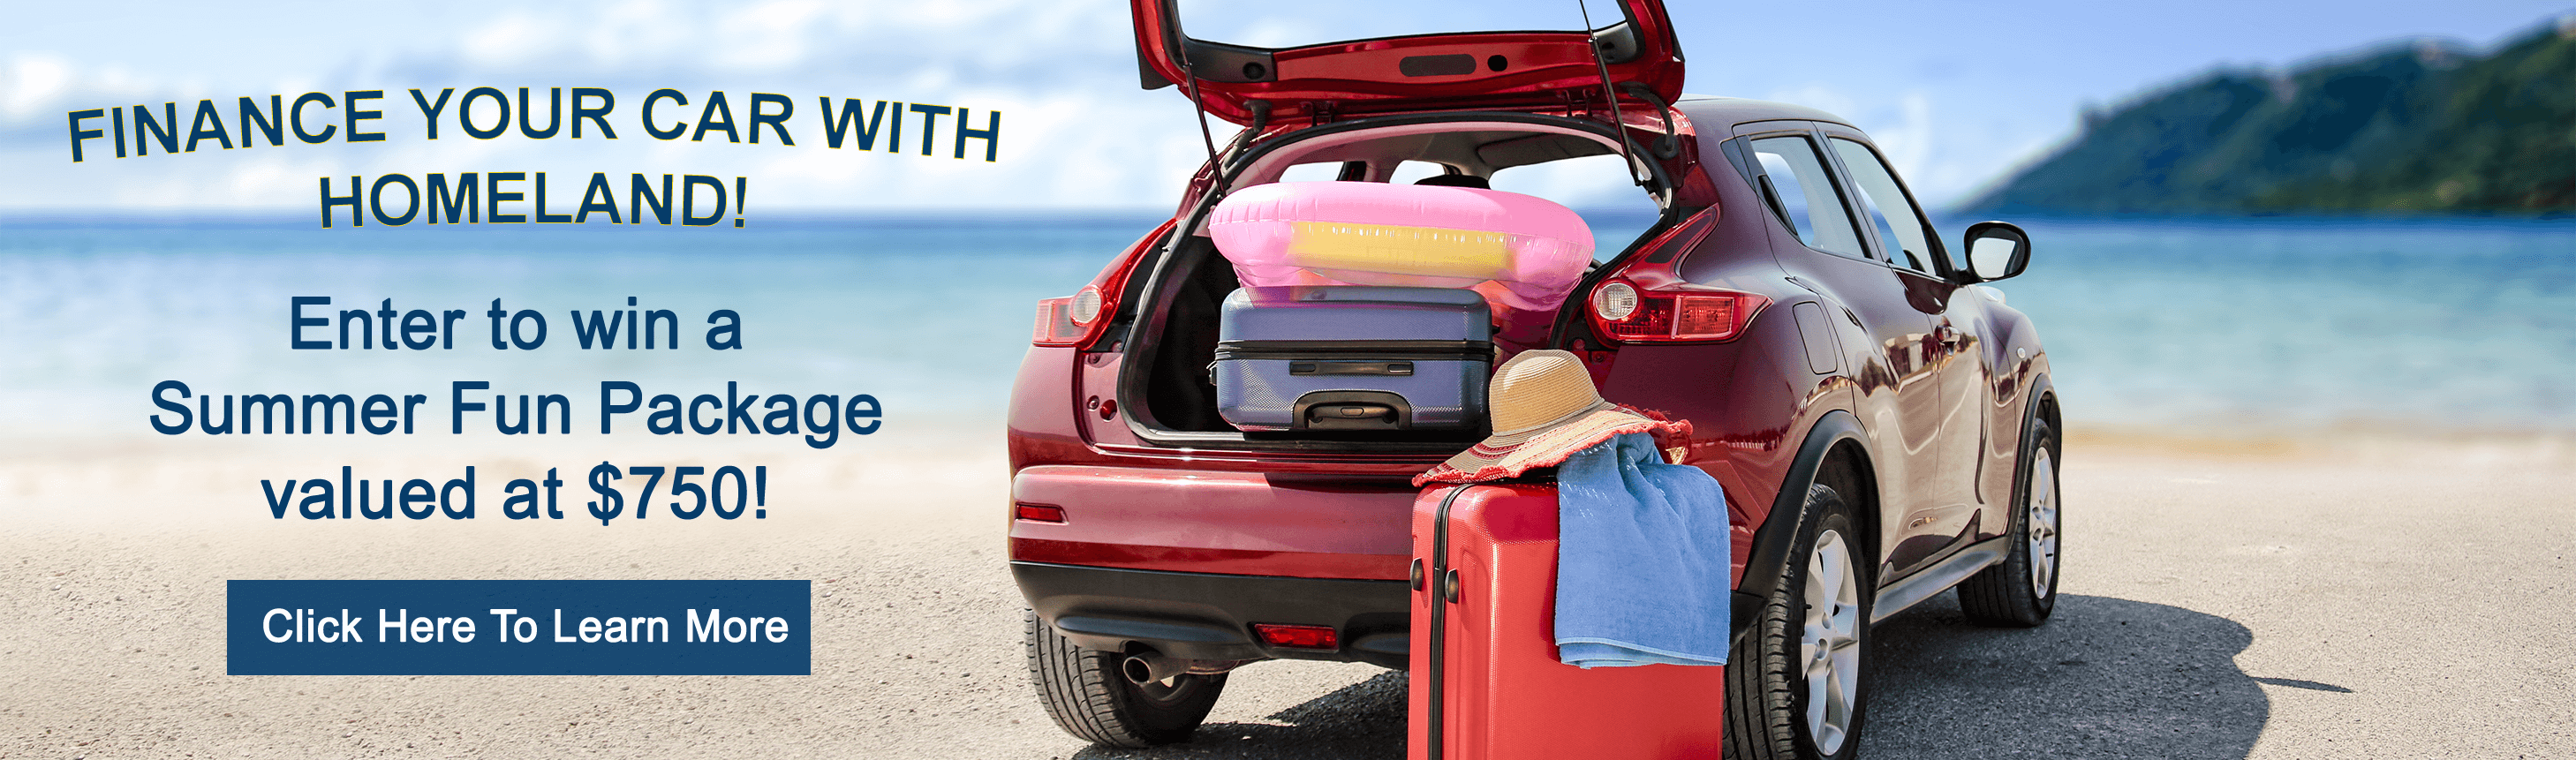 Finance your car with homeland! Enter to win a summer fun package valued at $750! Click Here to Learn More